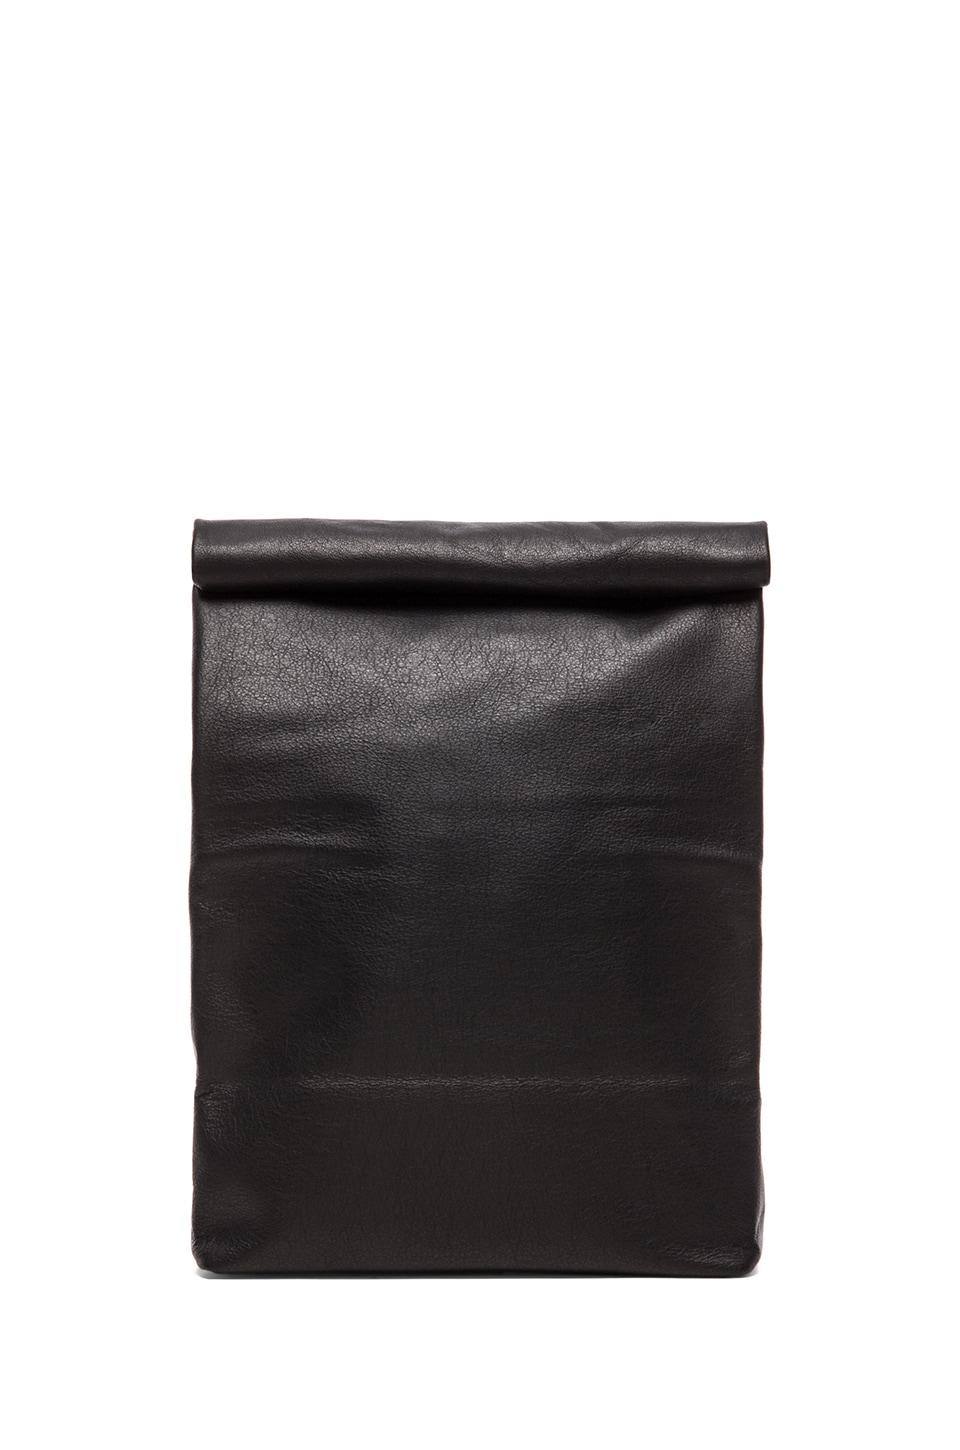 Stampd Medium Bodega Bag in Black